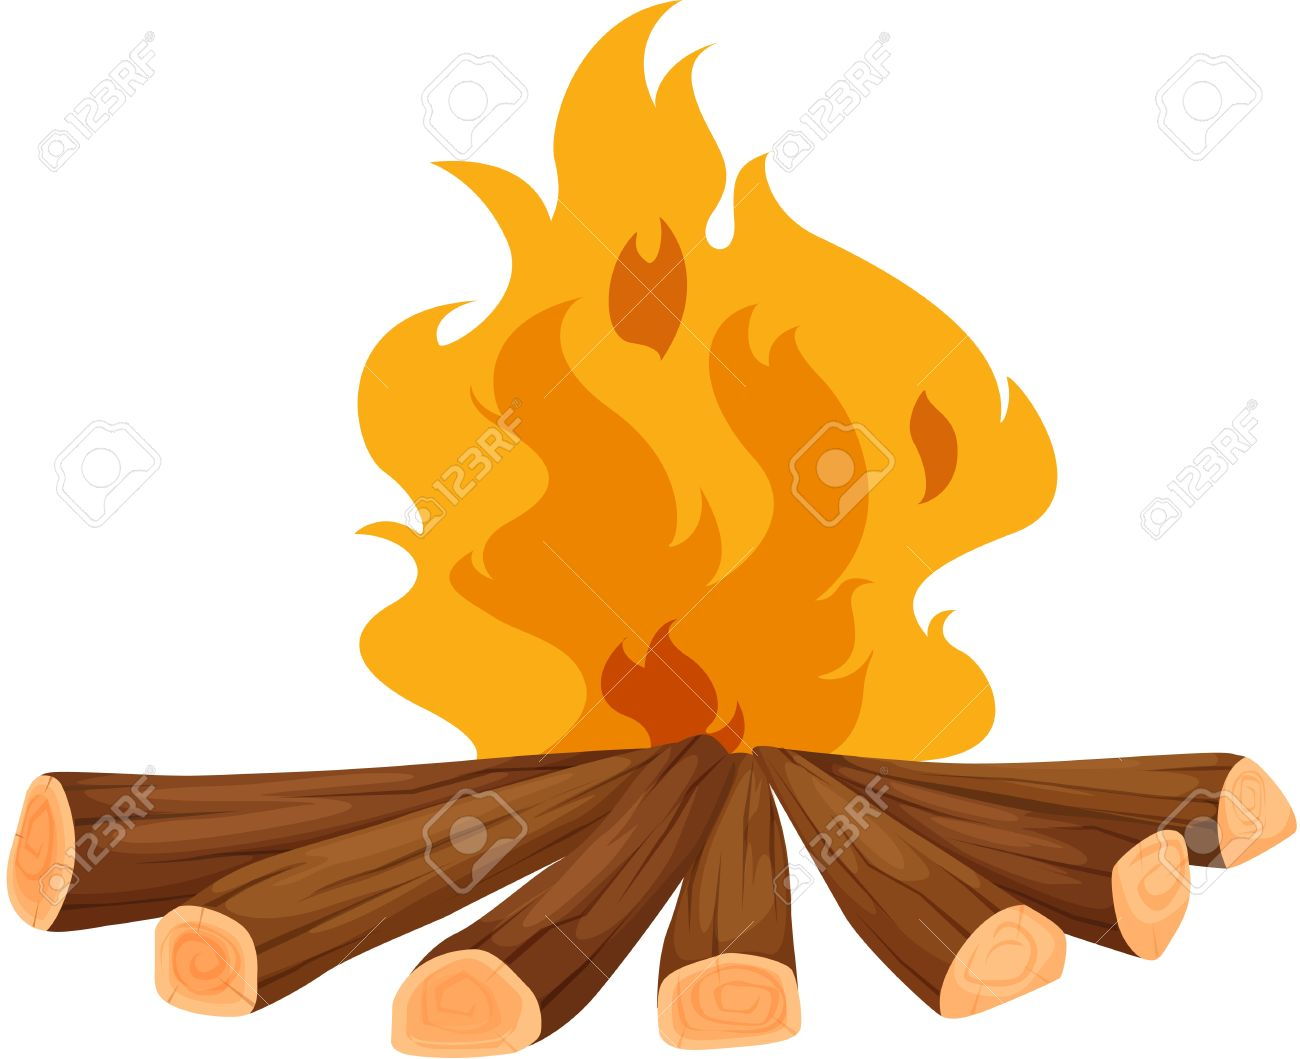 Illustration Of A Campfire On White Royalty Free Cliparts, Vectors.